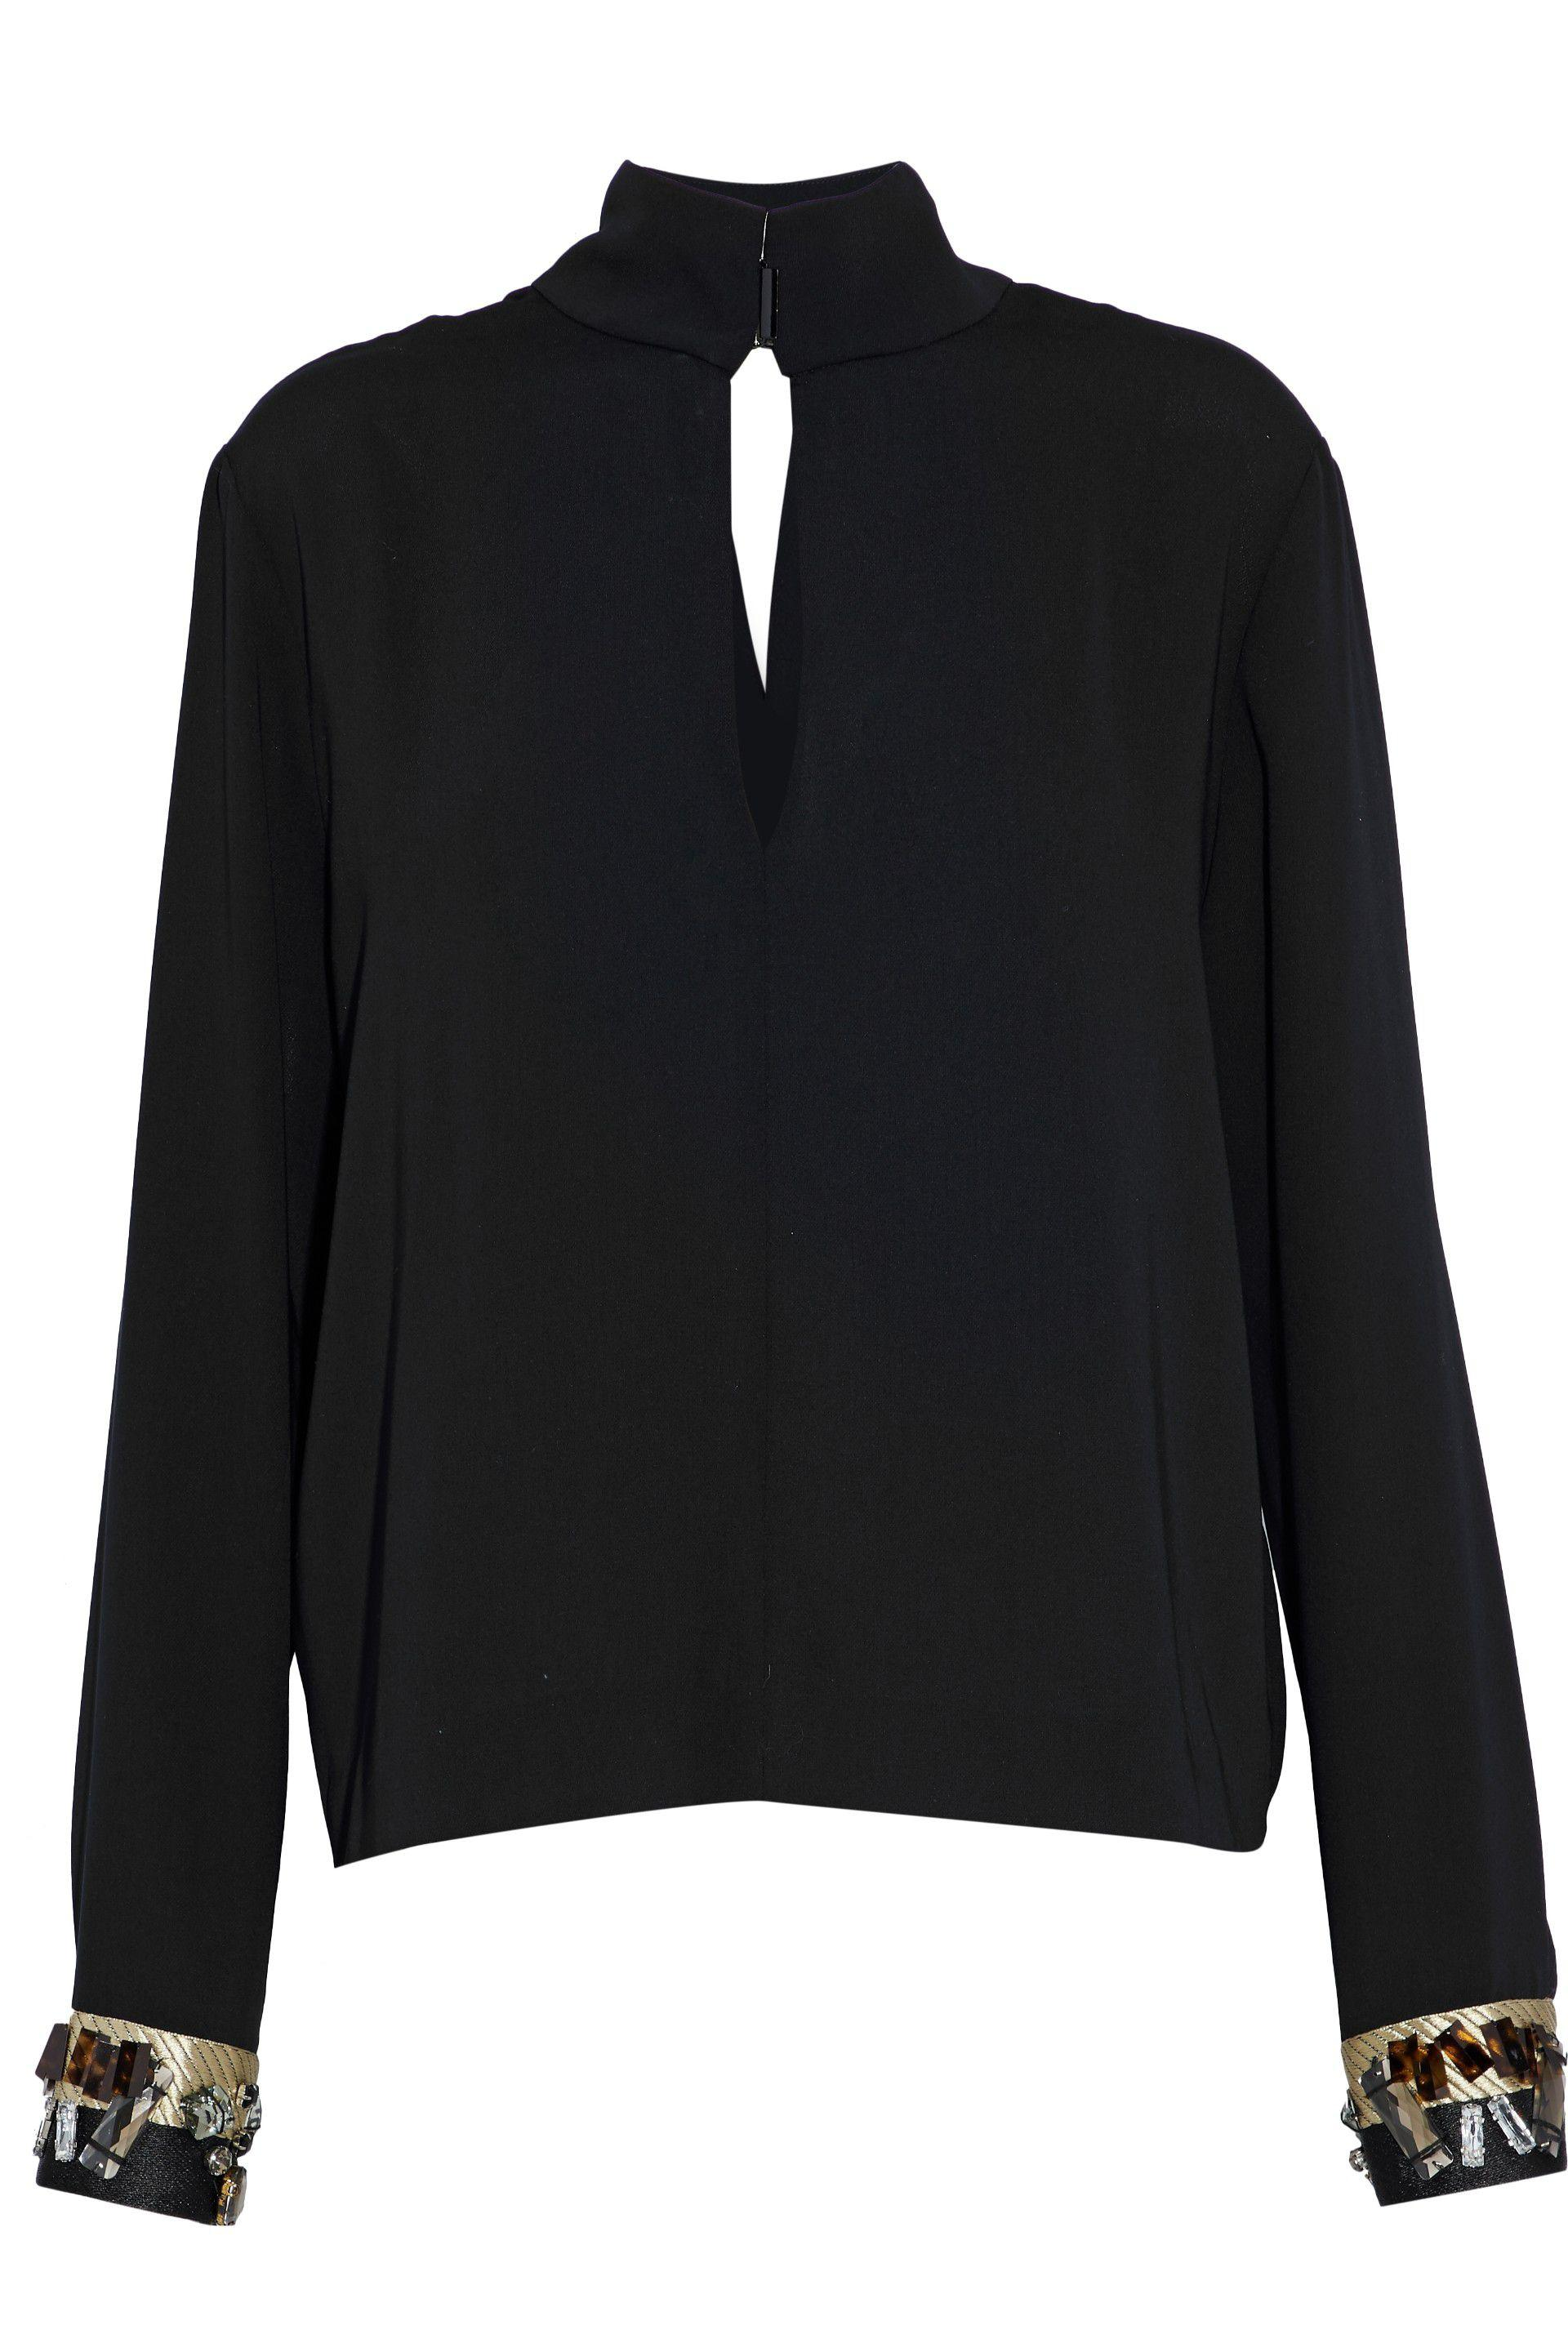 By Malene Birger. Women's Black Limanta Embellished Crepe De Chine Blouse